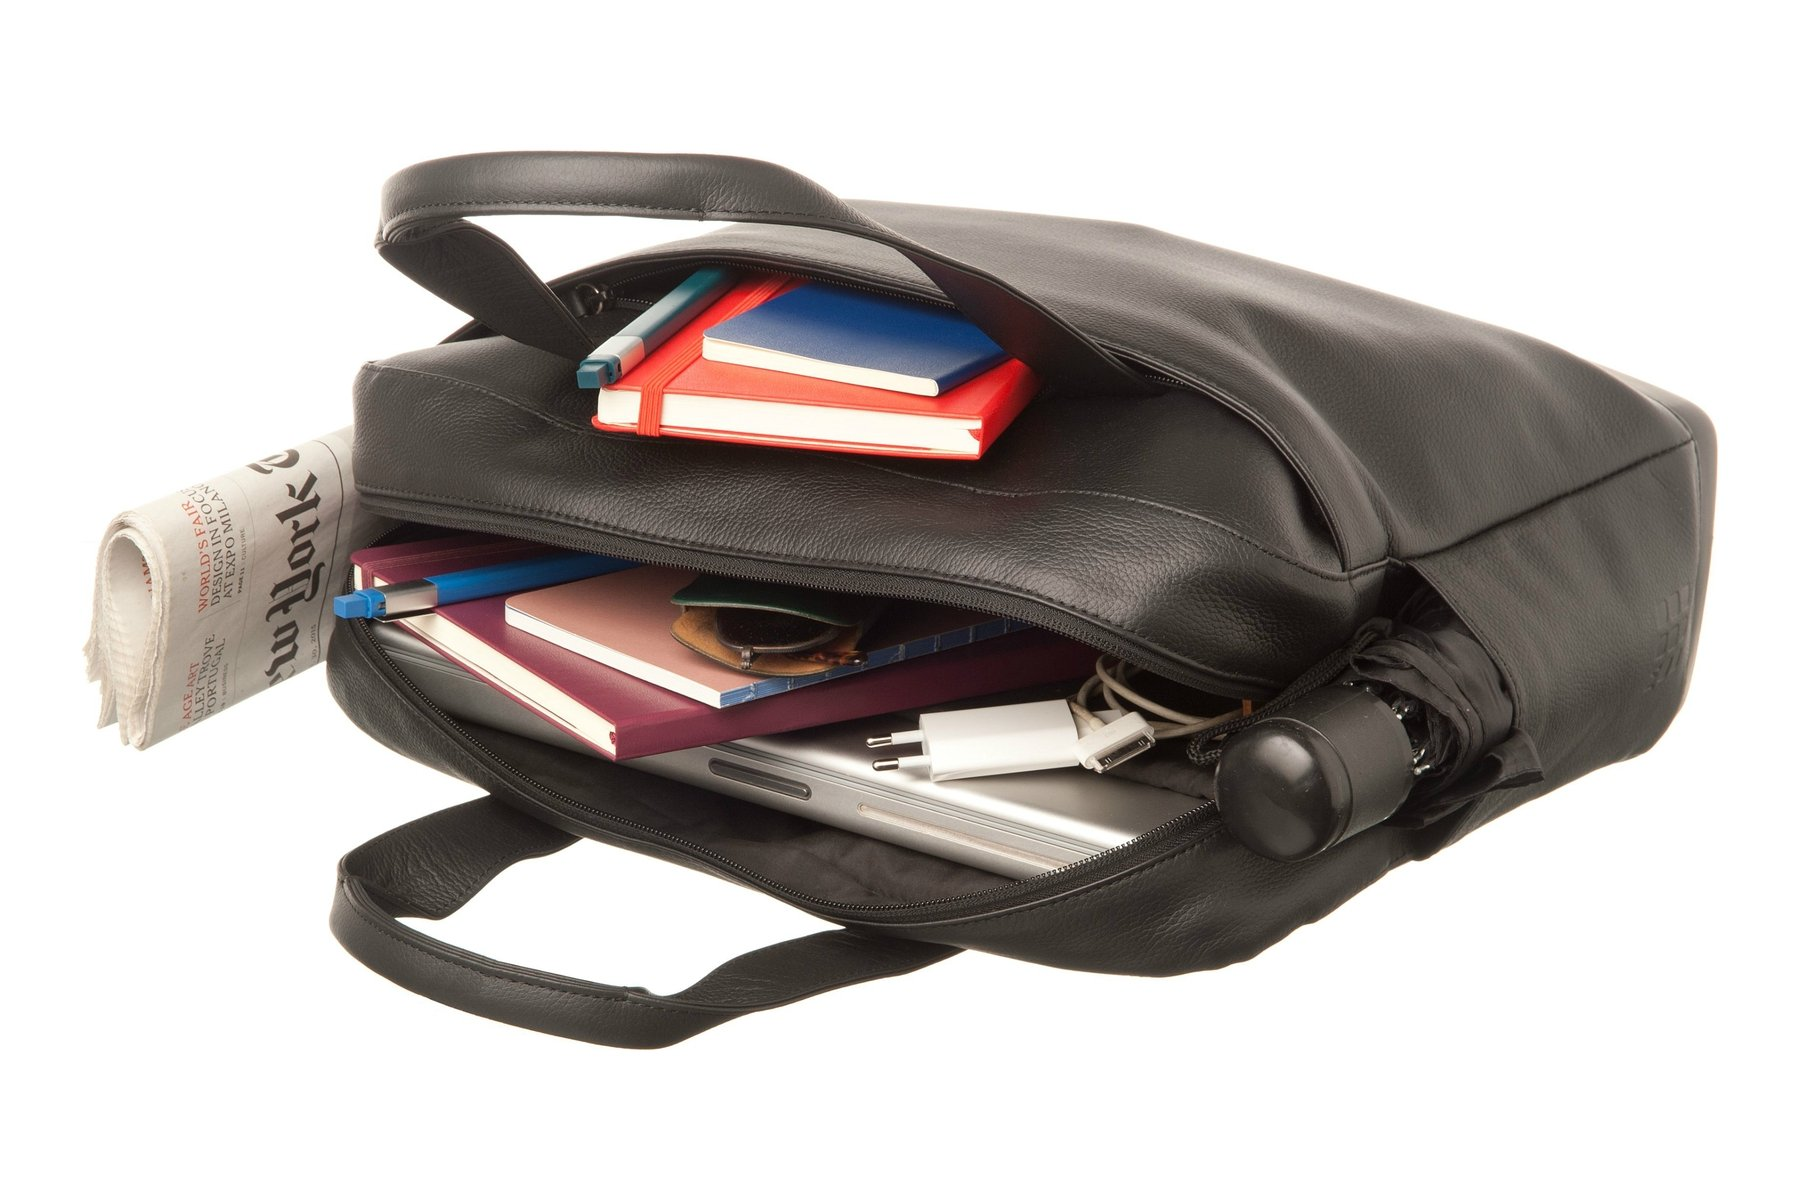 Moleskine Classic Leather Utility Bag, Black, For Work, School, Travel, and Everyday Use, Space for Tablet Laptop and Chargers, Notebook Planner or Organizer, Padded Adjustable Straps, Secure Zipper by Moleskine (Image #4)